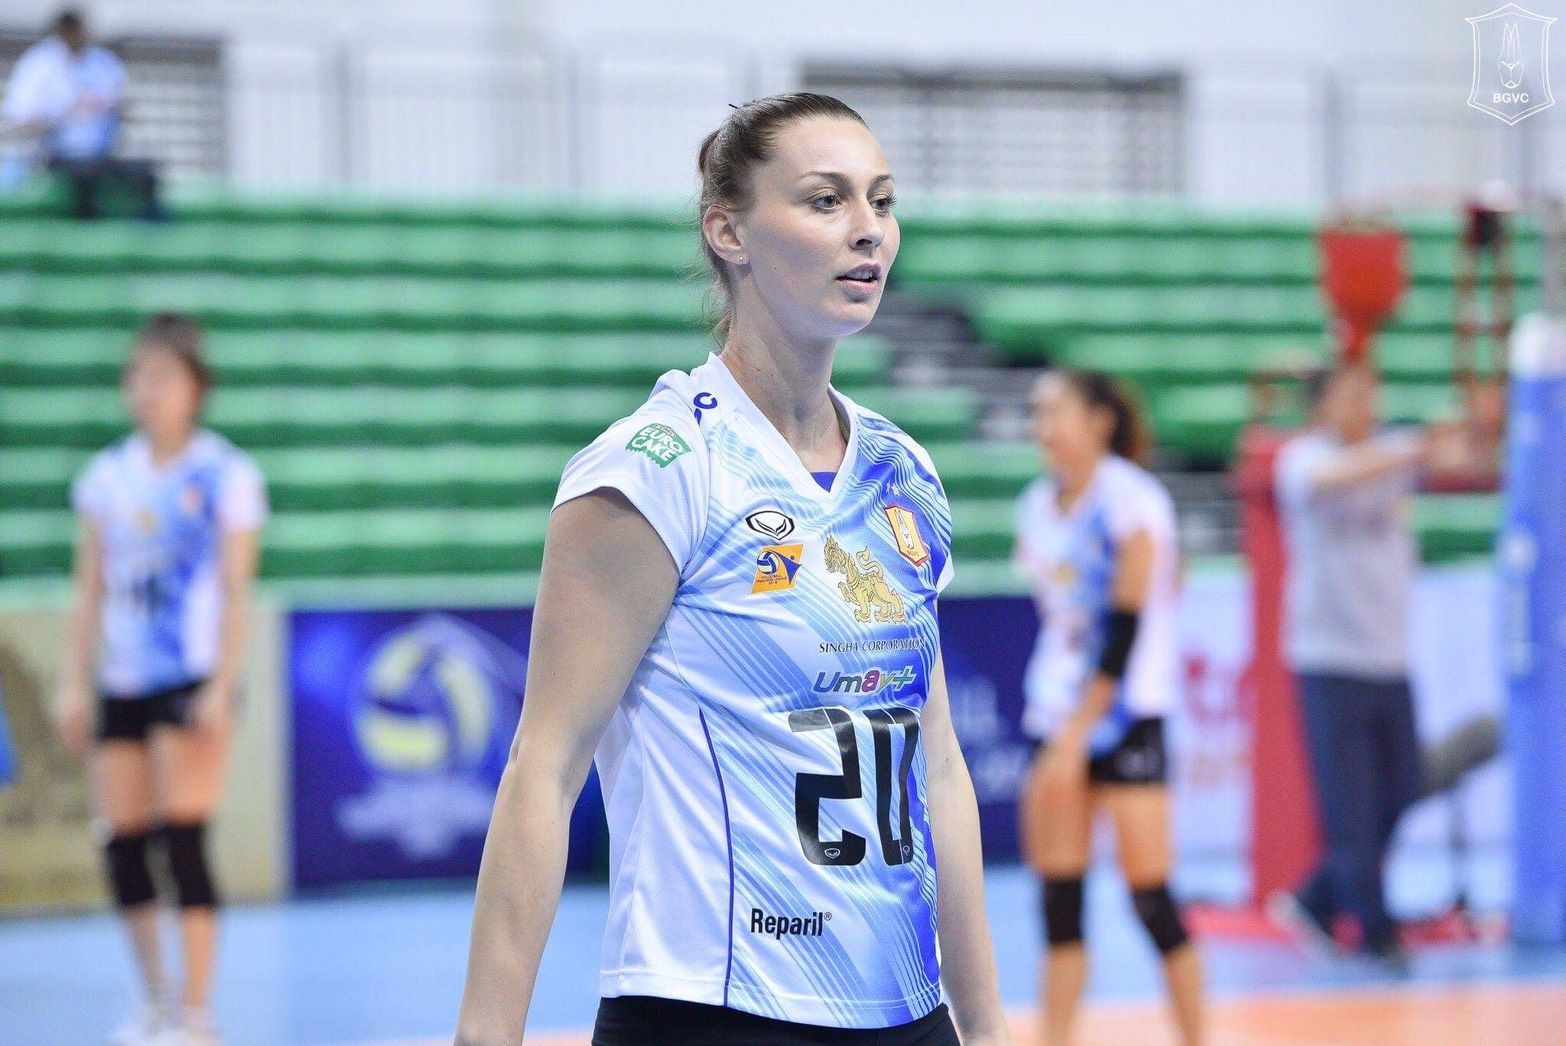 Sonia The Slap Bgvc Moved To South Korea League Volleyball Thailand League Volleyball Thailand The Slap